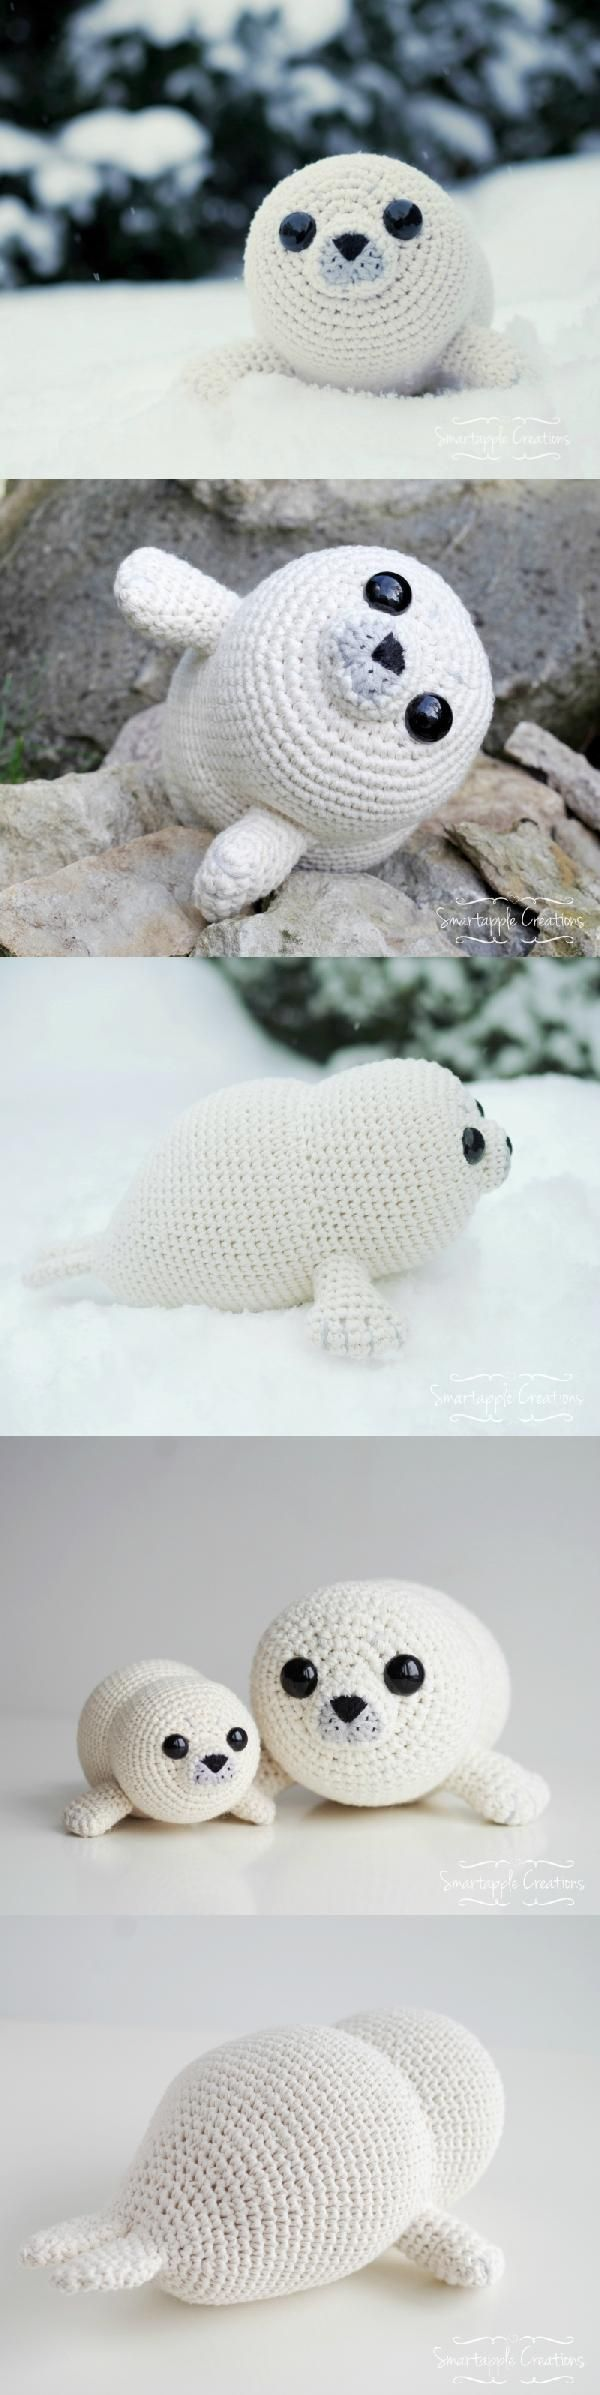 Bubbly the Baby Seal amigurumi pattern by Smartapple Creations ...